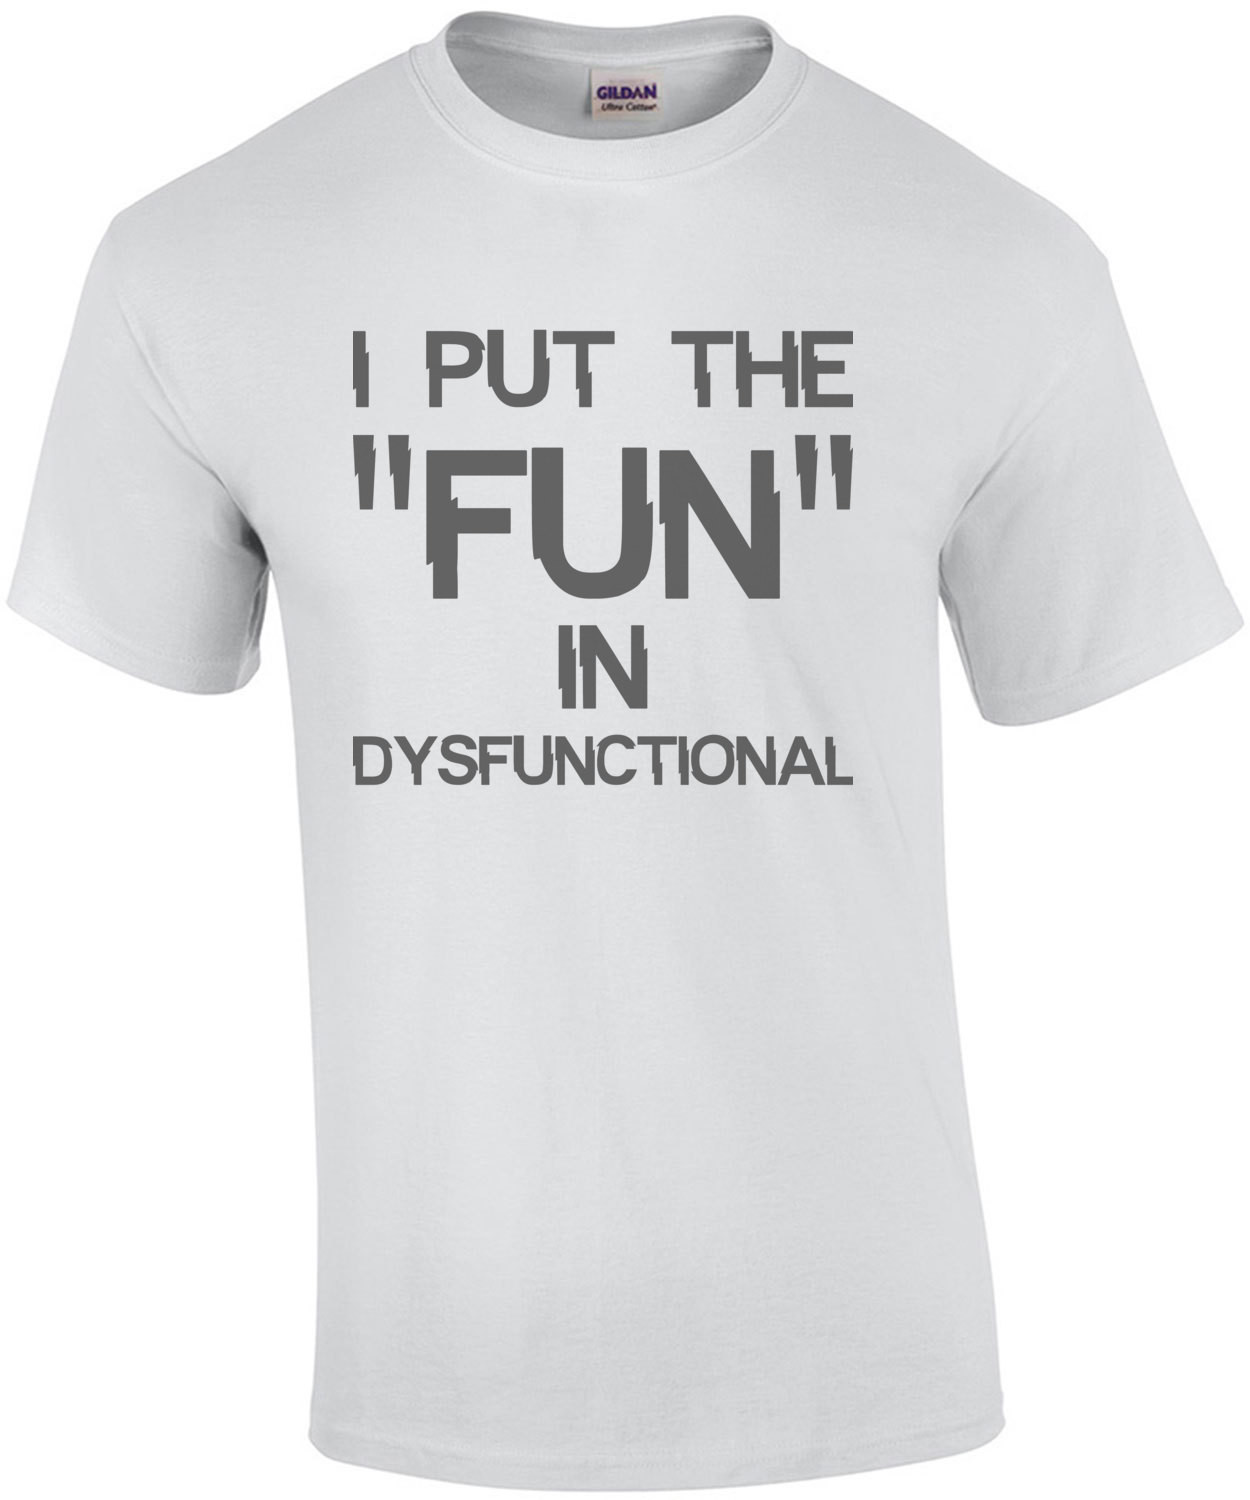 """I put the """"fun"""" in dysfunctional - funny t-shirt"""